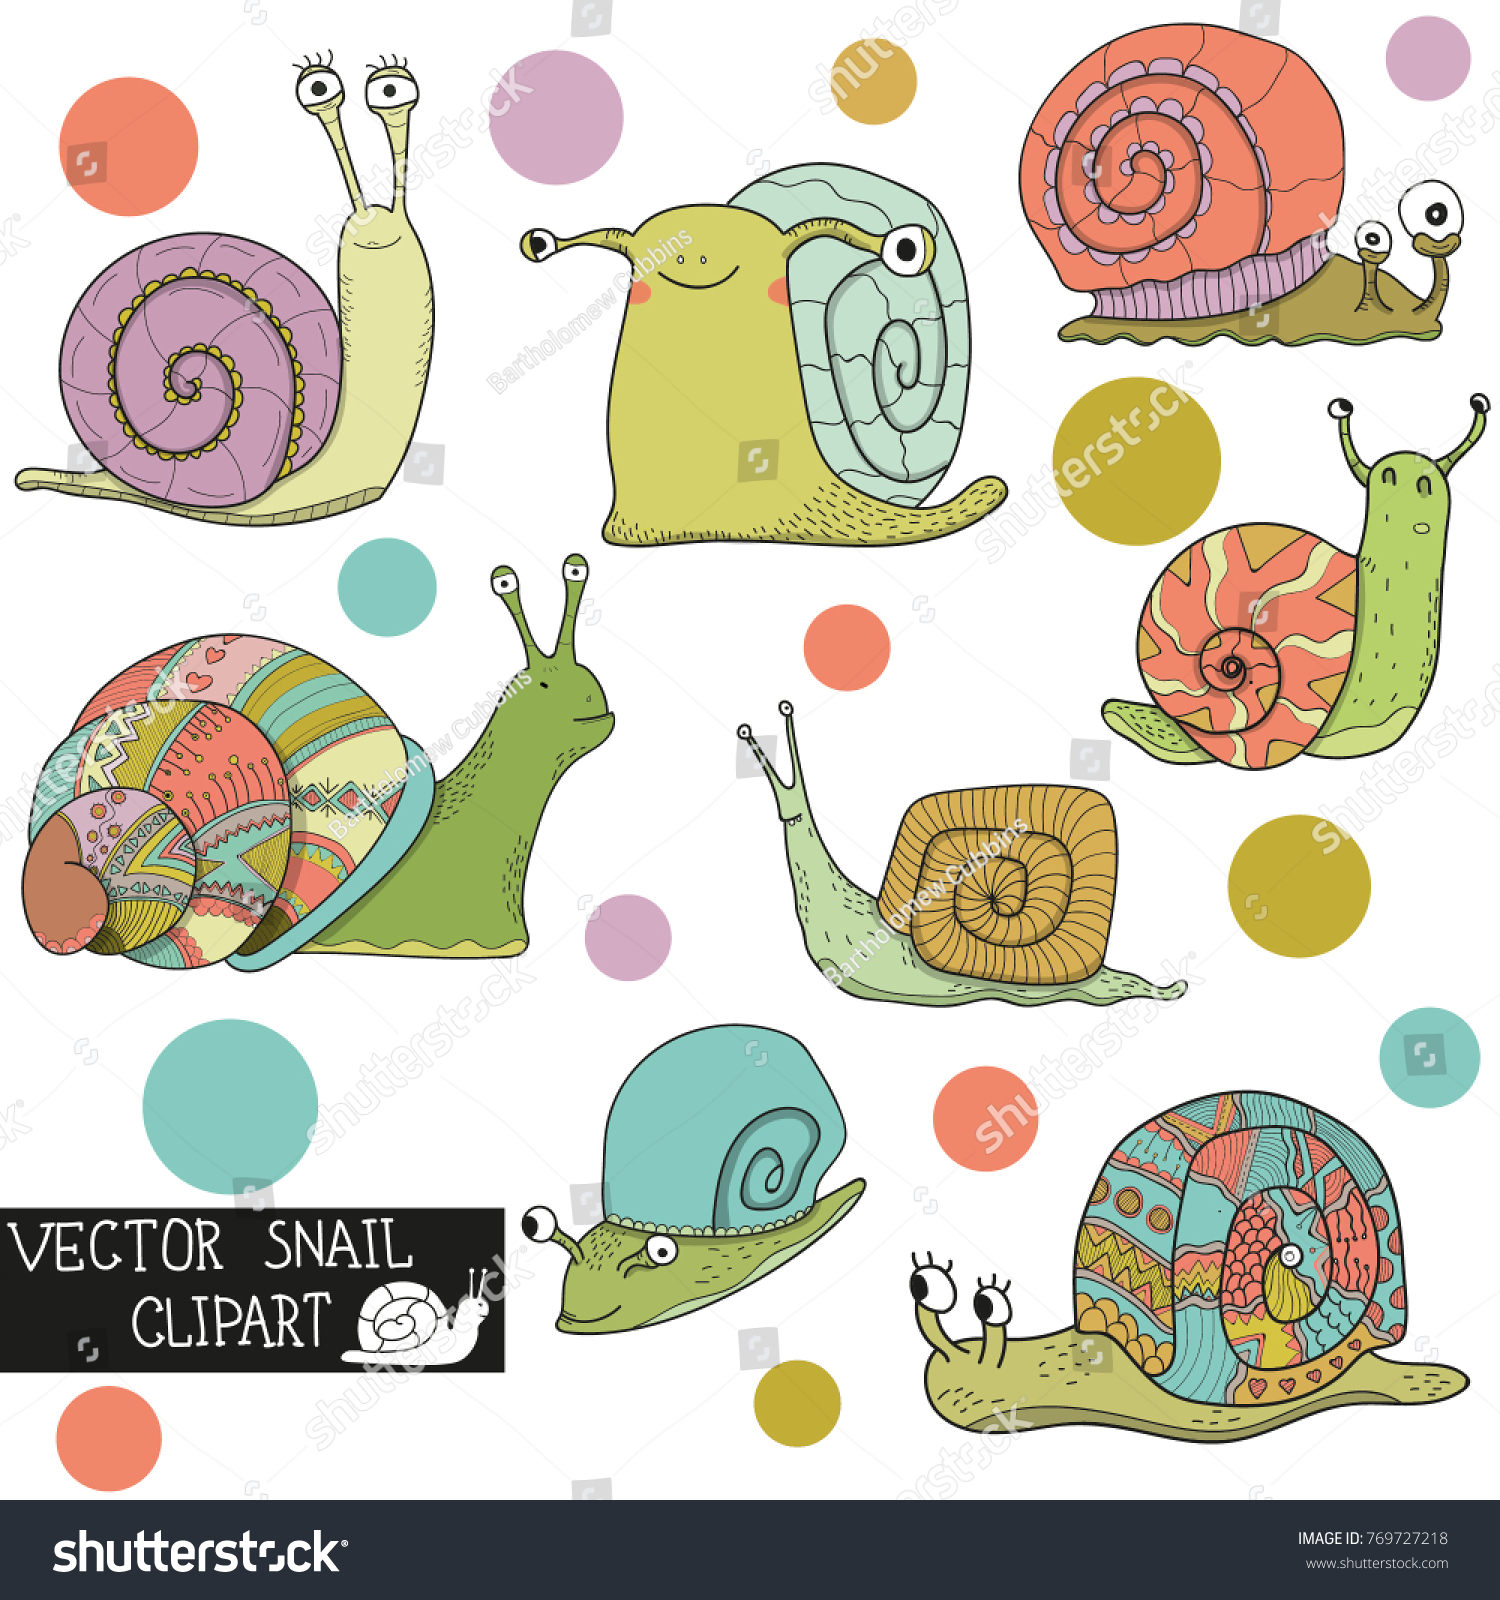 hight resolution of vector snail clipart stock vector royalty free 769727218 shutterstock